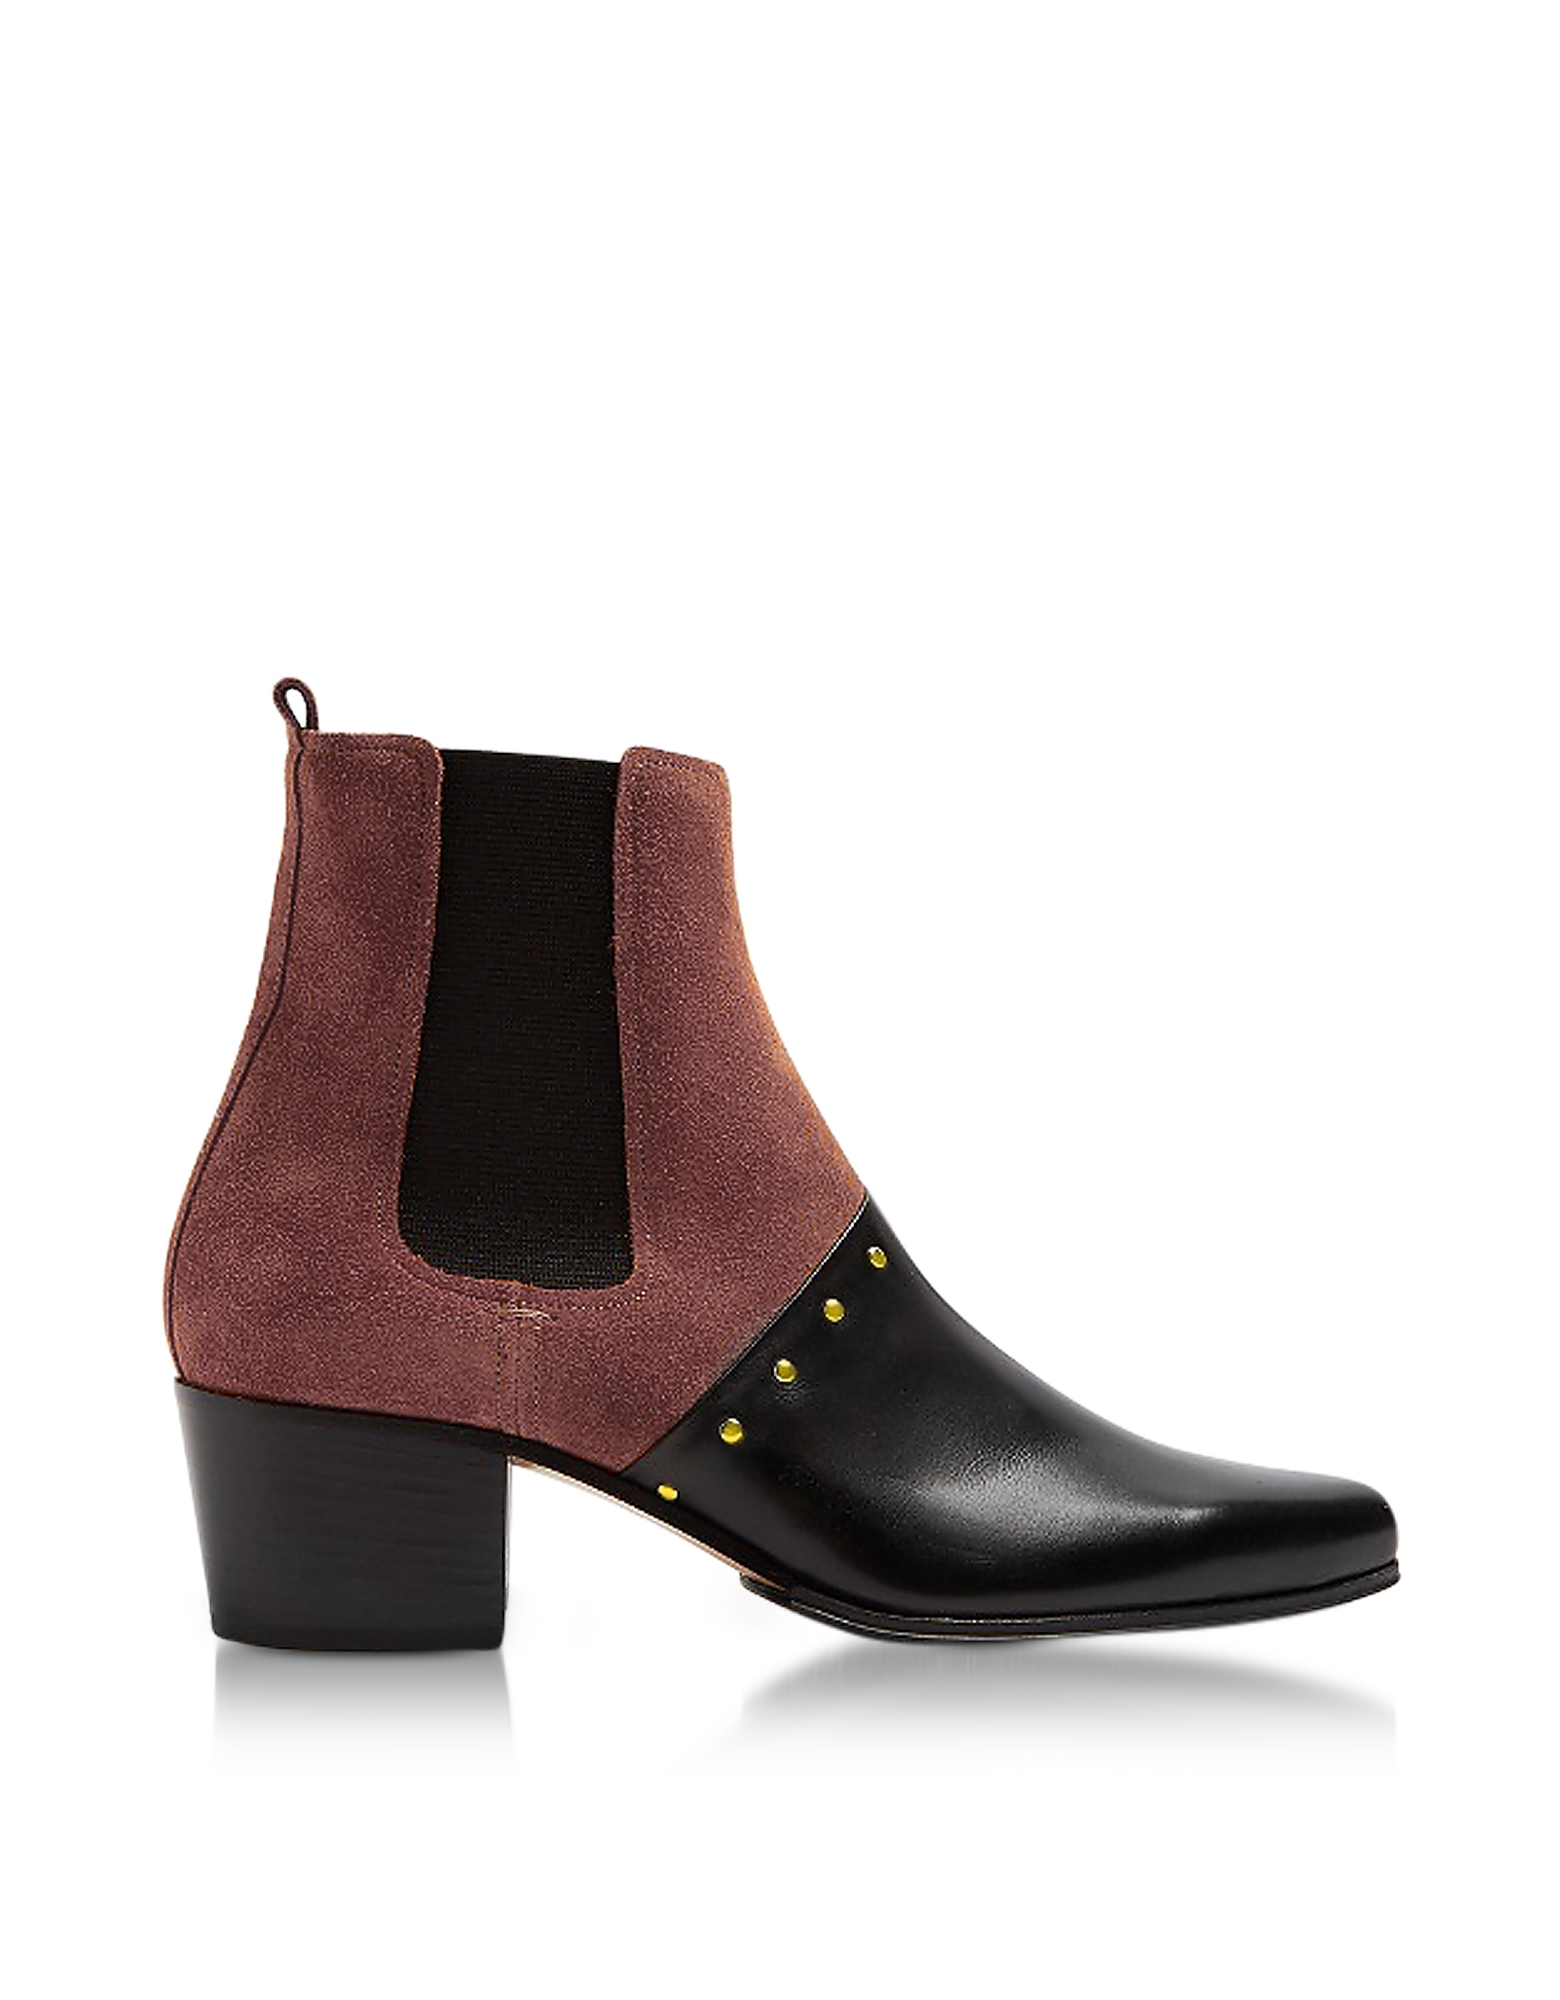 Balmain Shoes, Artemisia Black Leather and Burgundy Suede Boots